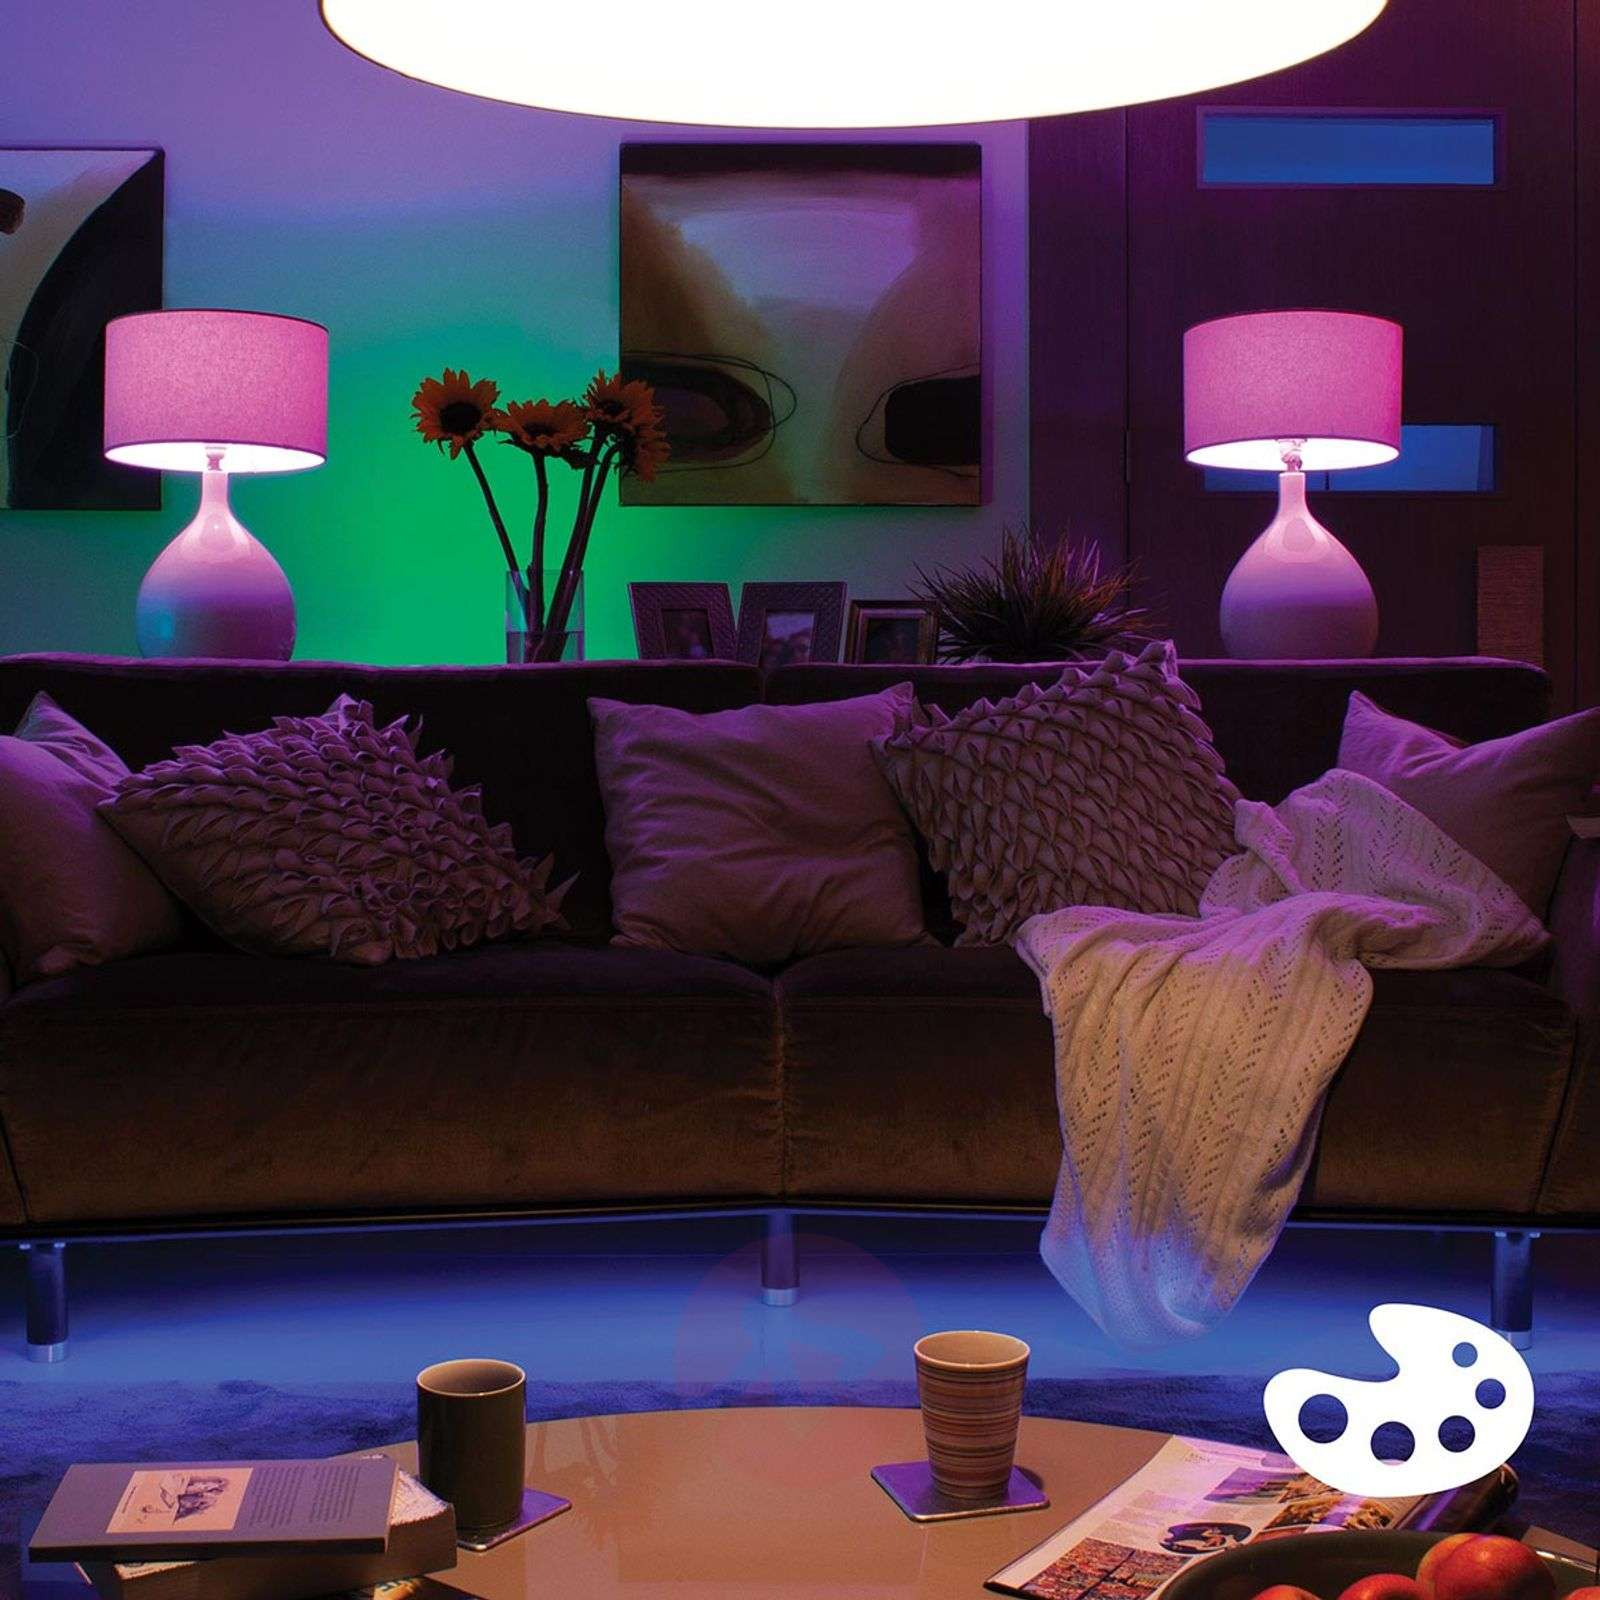 Philips Hue 2 x 10 W E27 White + Colour Ambiance-7532035-01